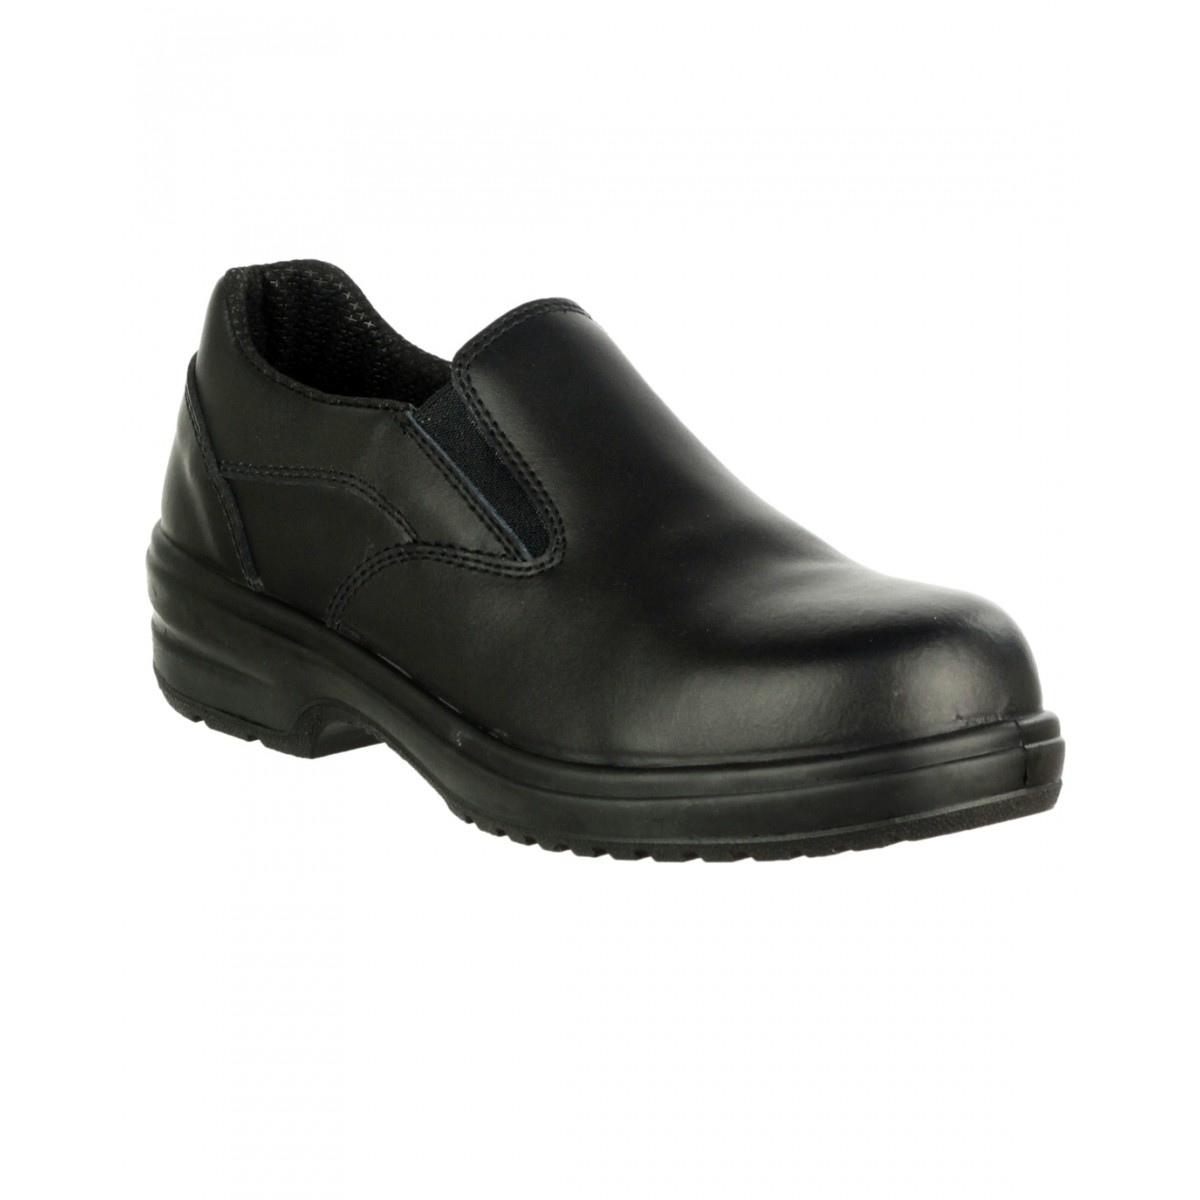 amblers fs94c womens slip on safety shoes charnwood